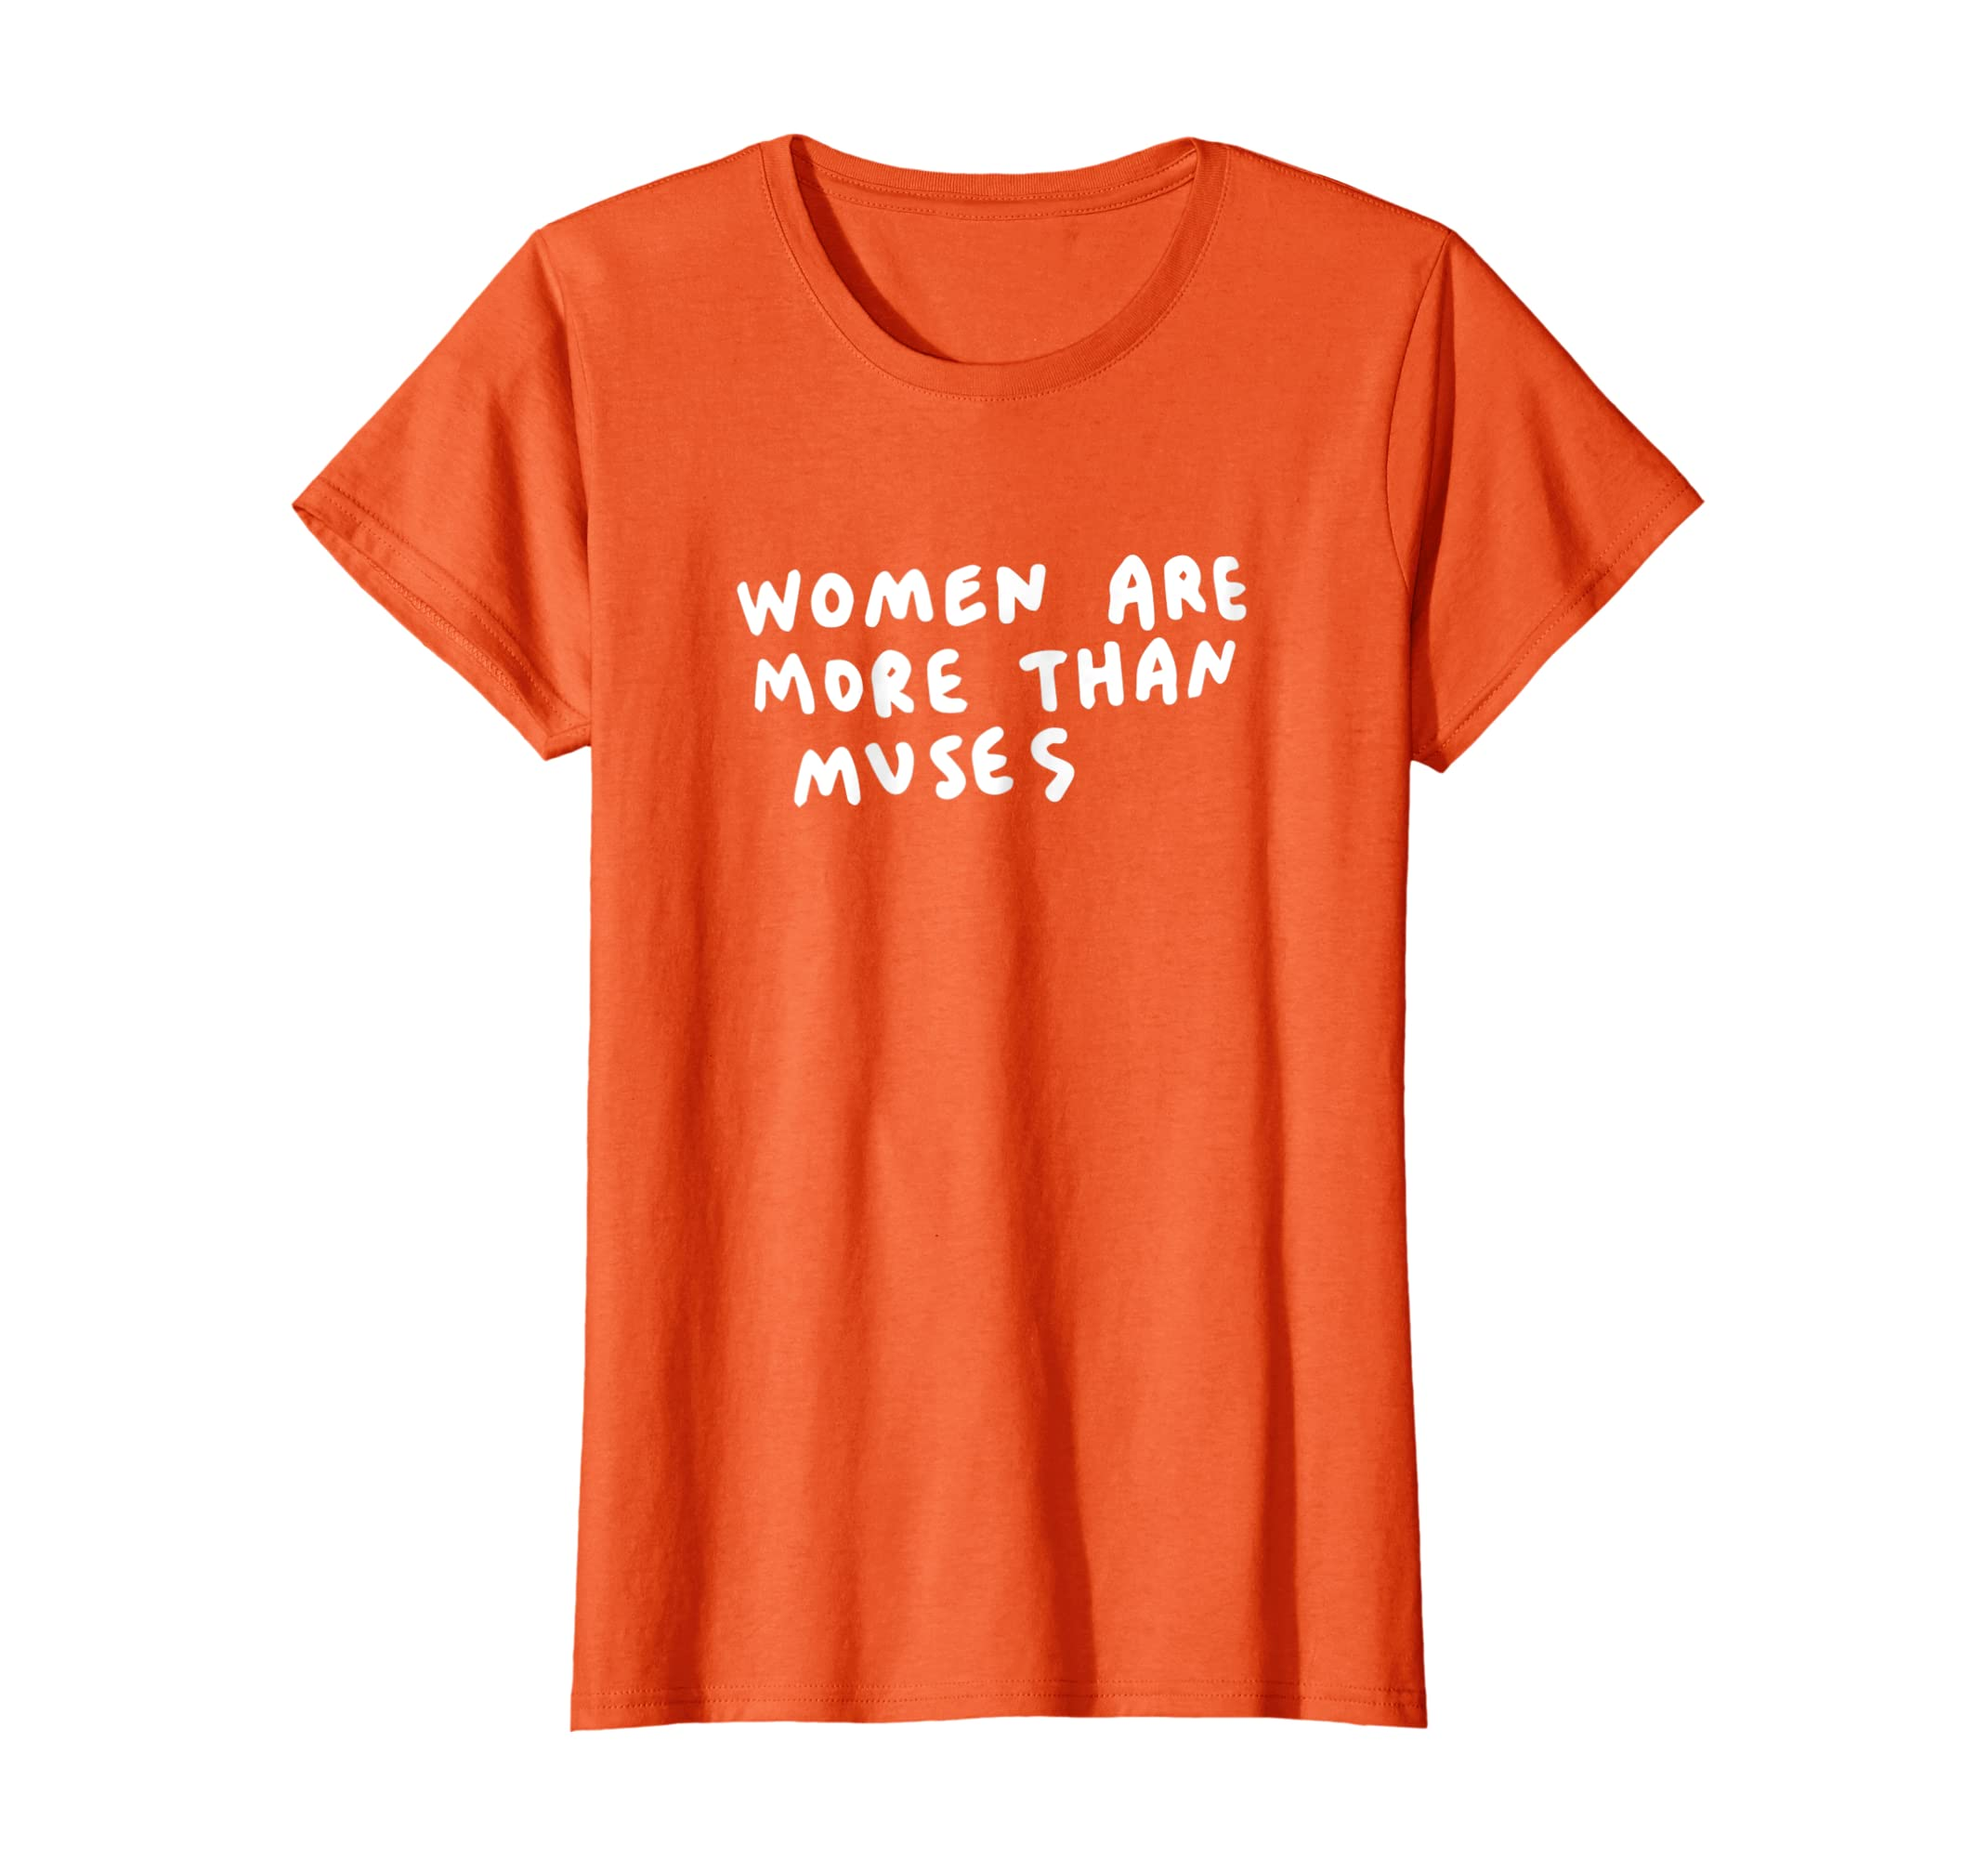 Amazon.com: Women Are More Than Muses T-shirt Equality Rights Freedom: Clothing